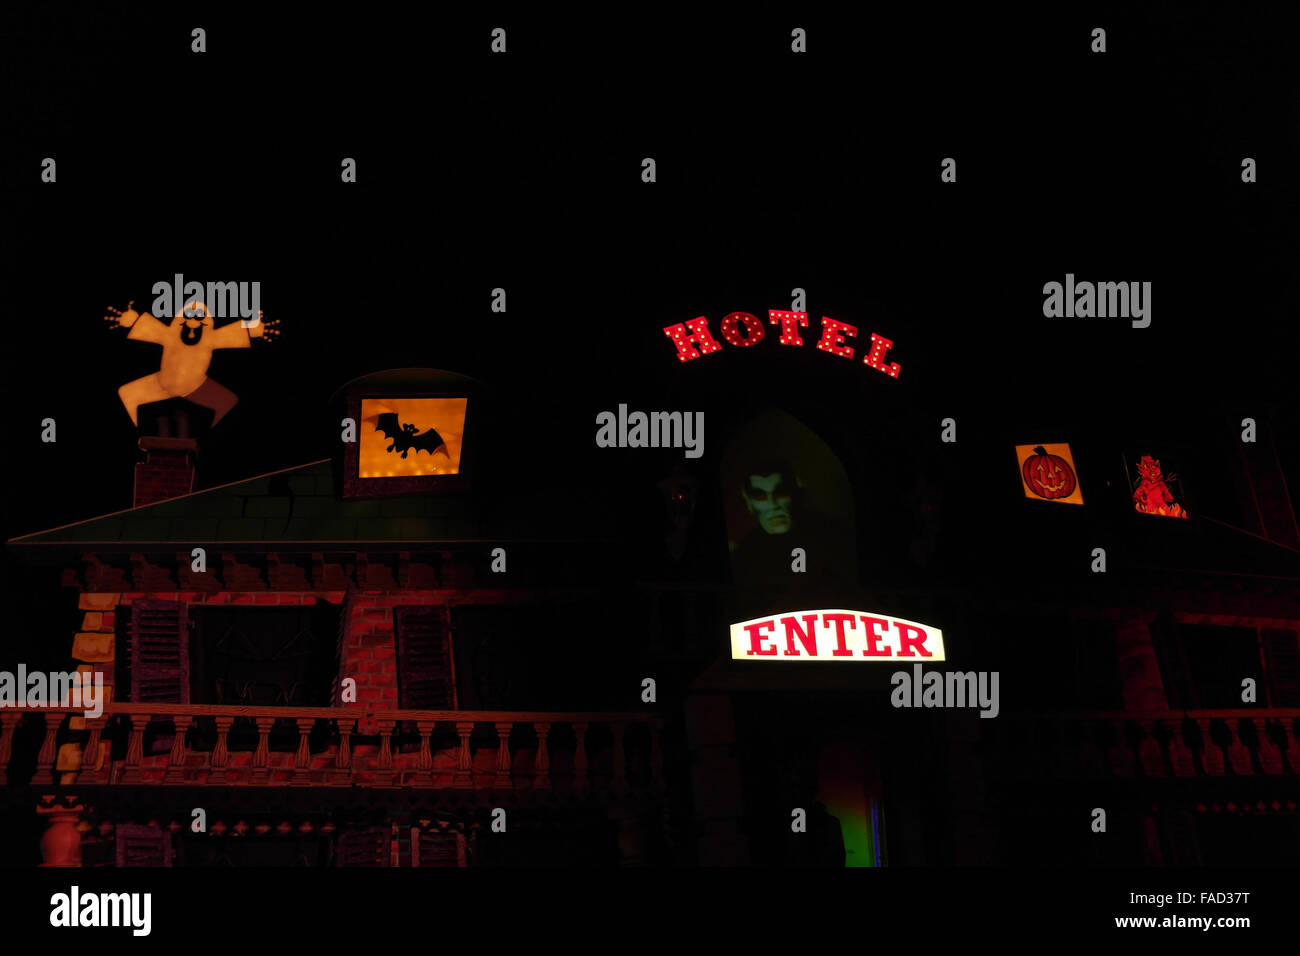 Night view illuminated brown facade Haunted Hotel Tableau with Dracula Head image, The Cliffs, Blackpool Illuminations, - Stock Image